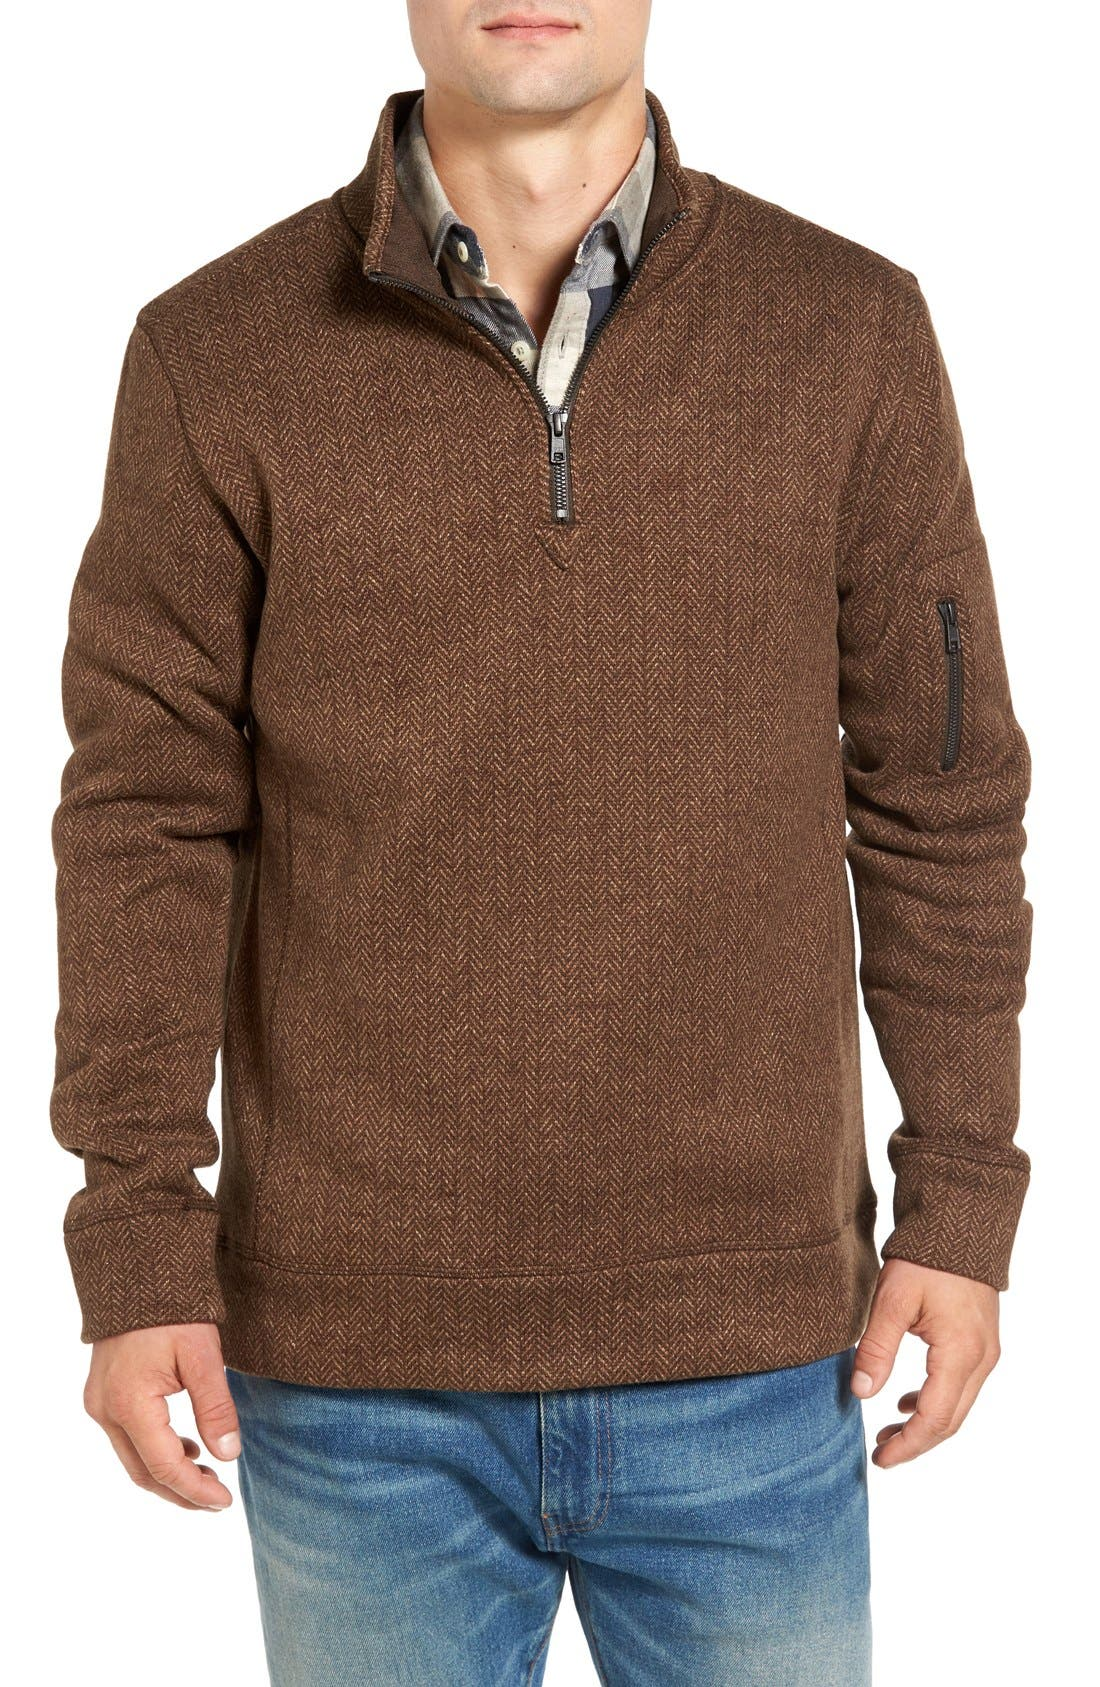 Lance Herringbone Zip Mock Neck Sweater,                         Main,                         color, Bittersweet Heather